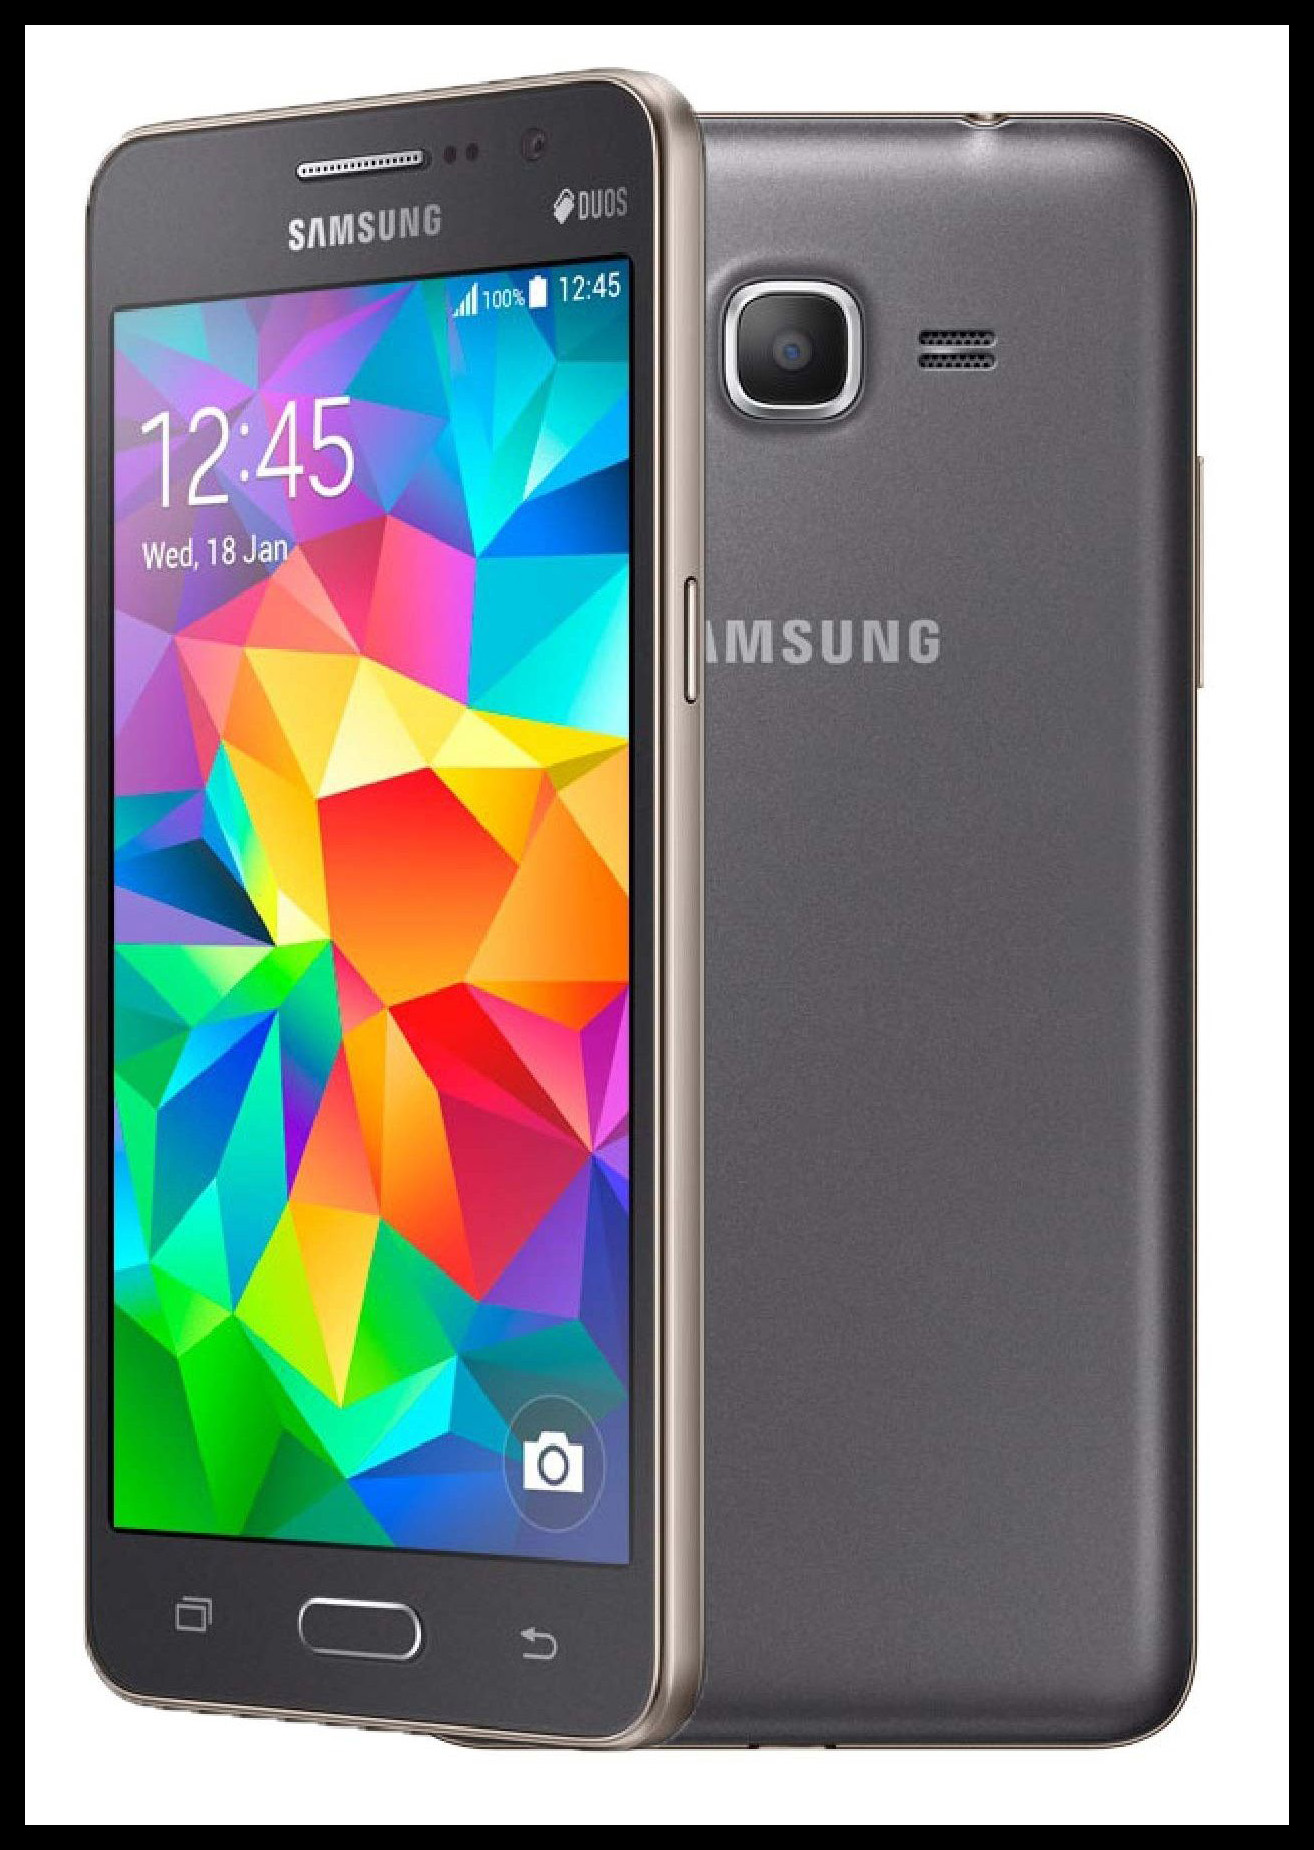 The Samsung Galaxy Amp Prime Review That Wins Customers